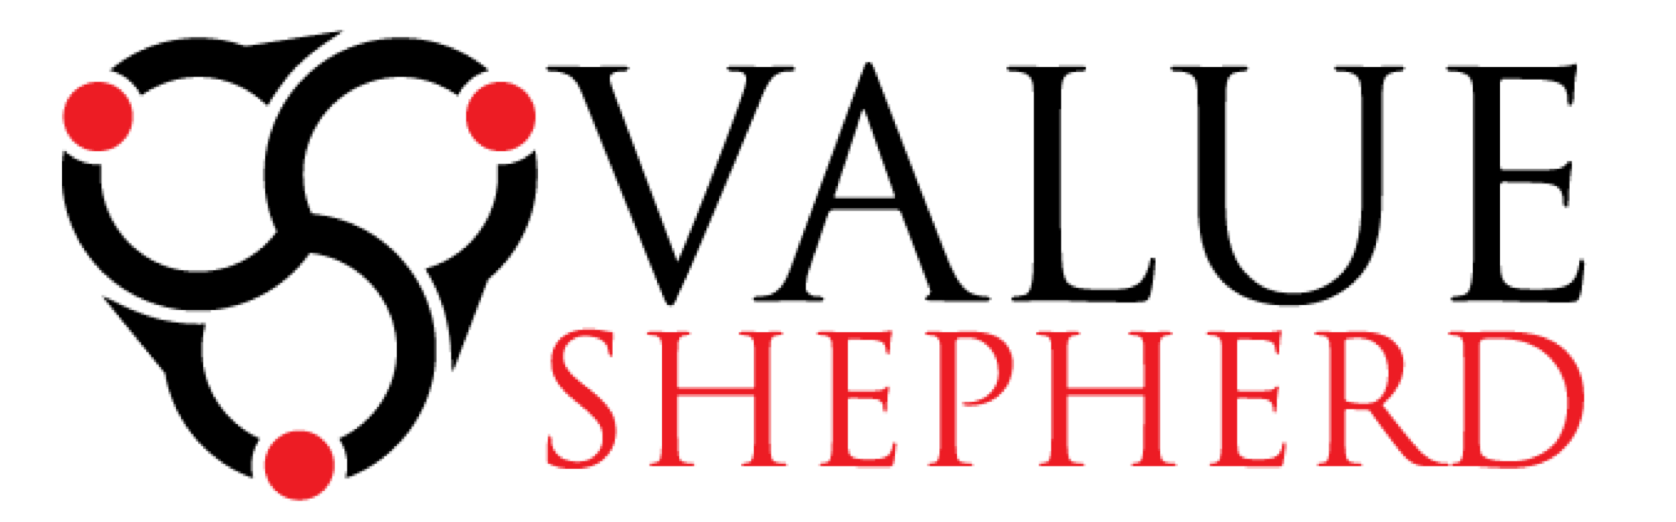 Value-Shepherd-1